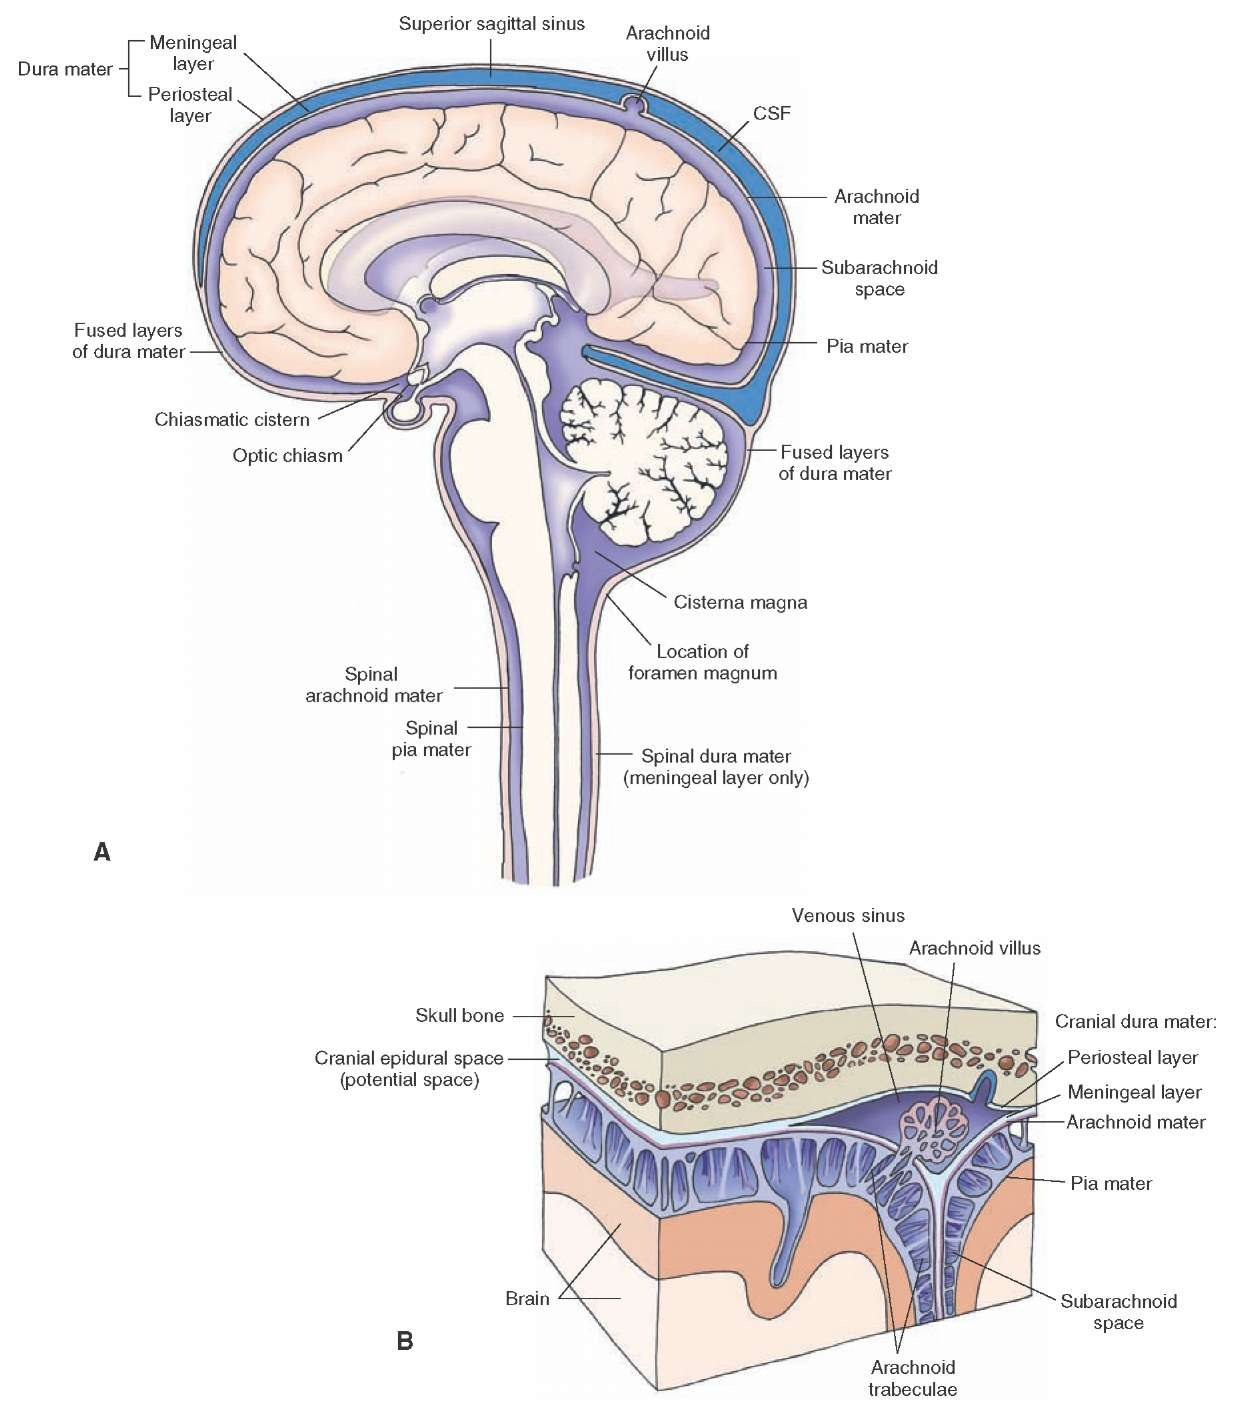 Meninges and Cerebrospinal Fluid (Gross Anatomy of the Brain) Part 1